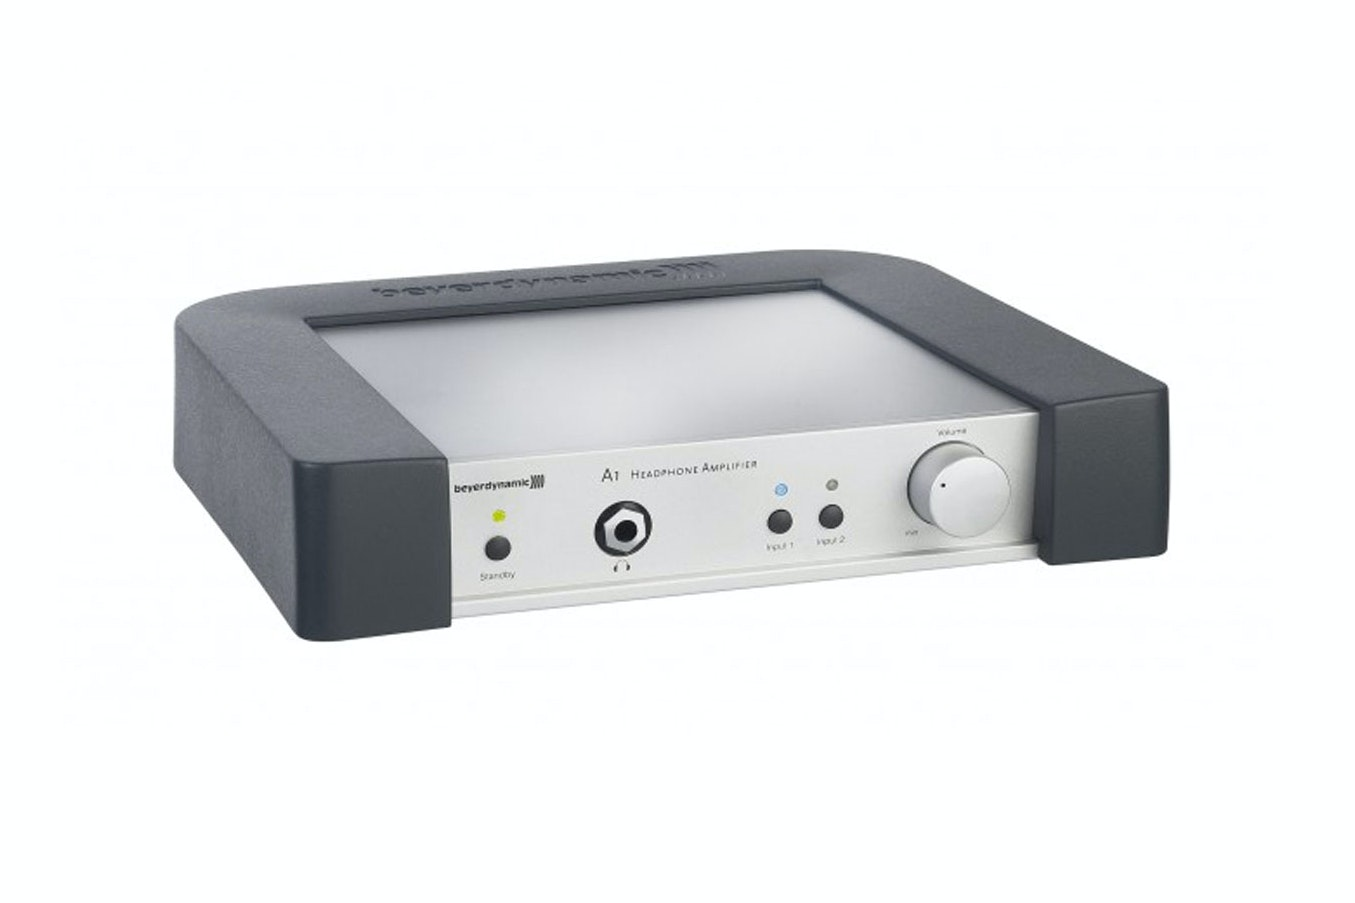 Beyerdynamic A1 Headphone Amplifier